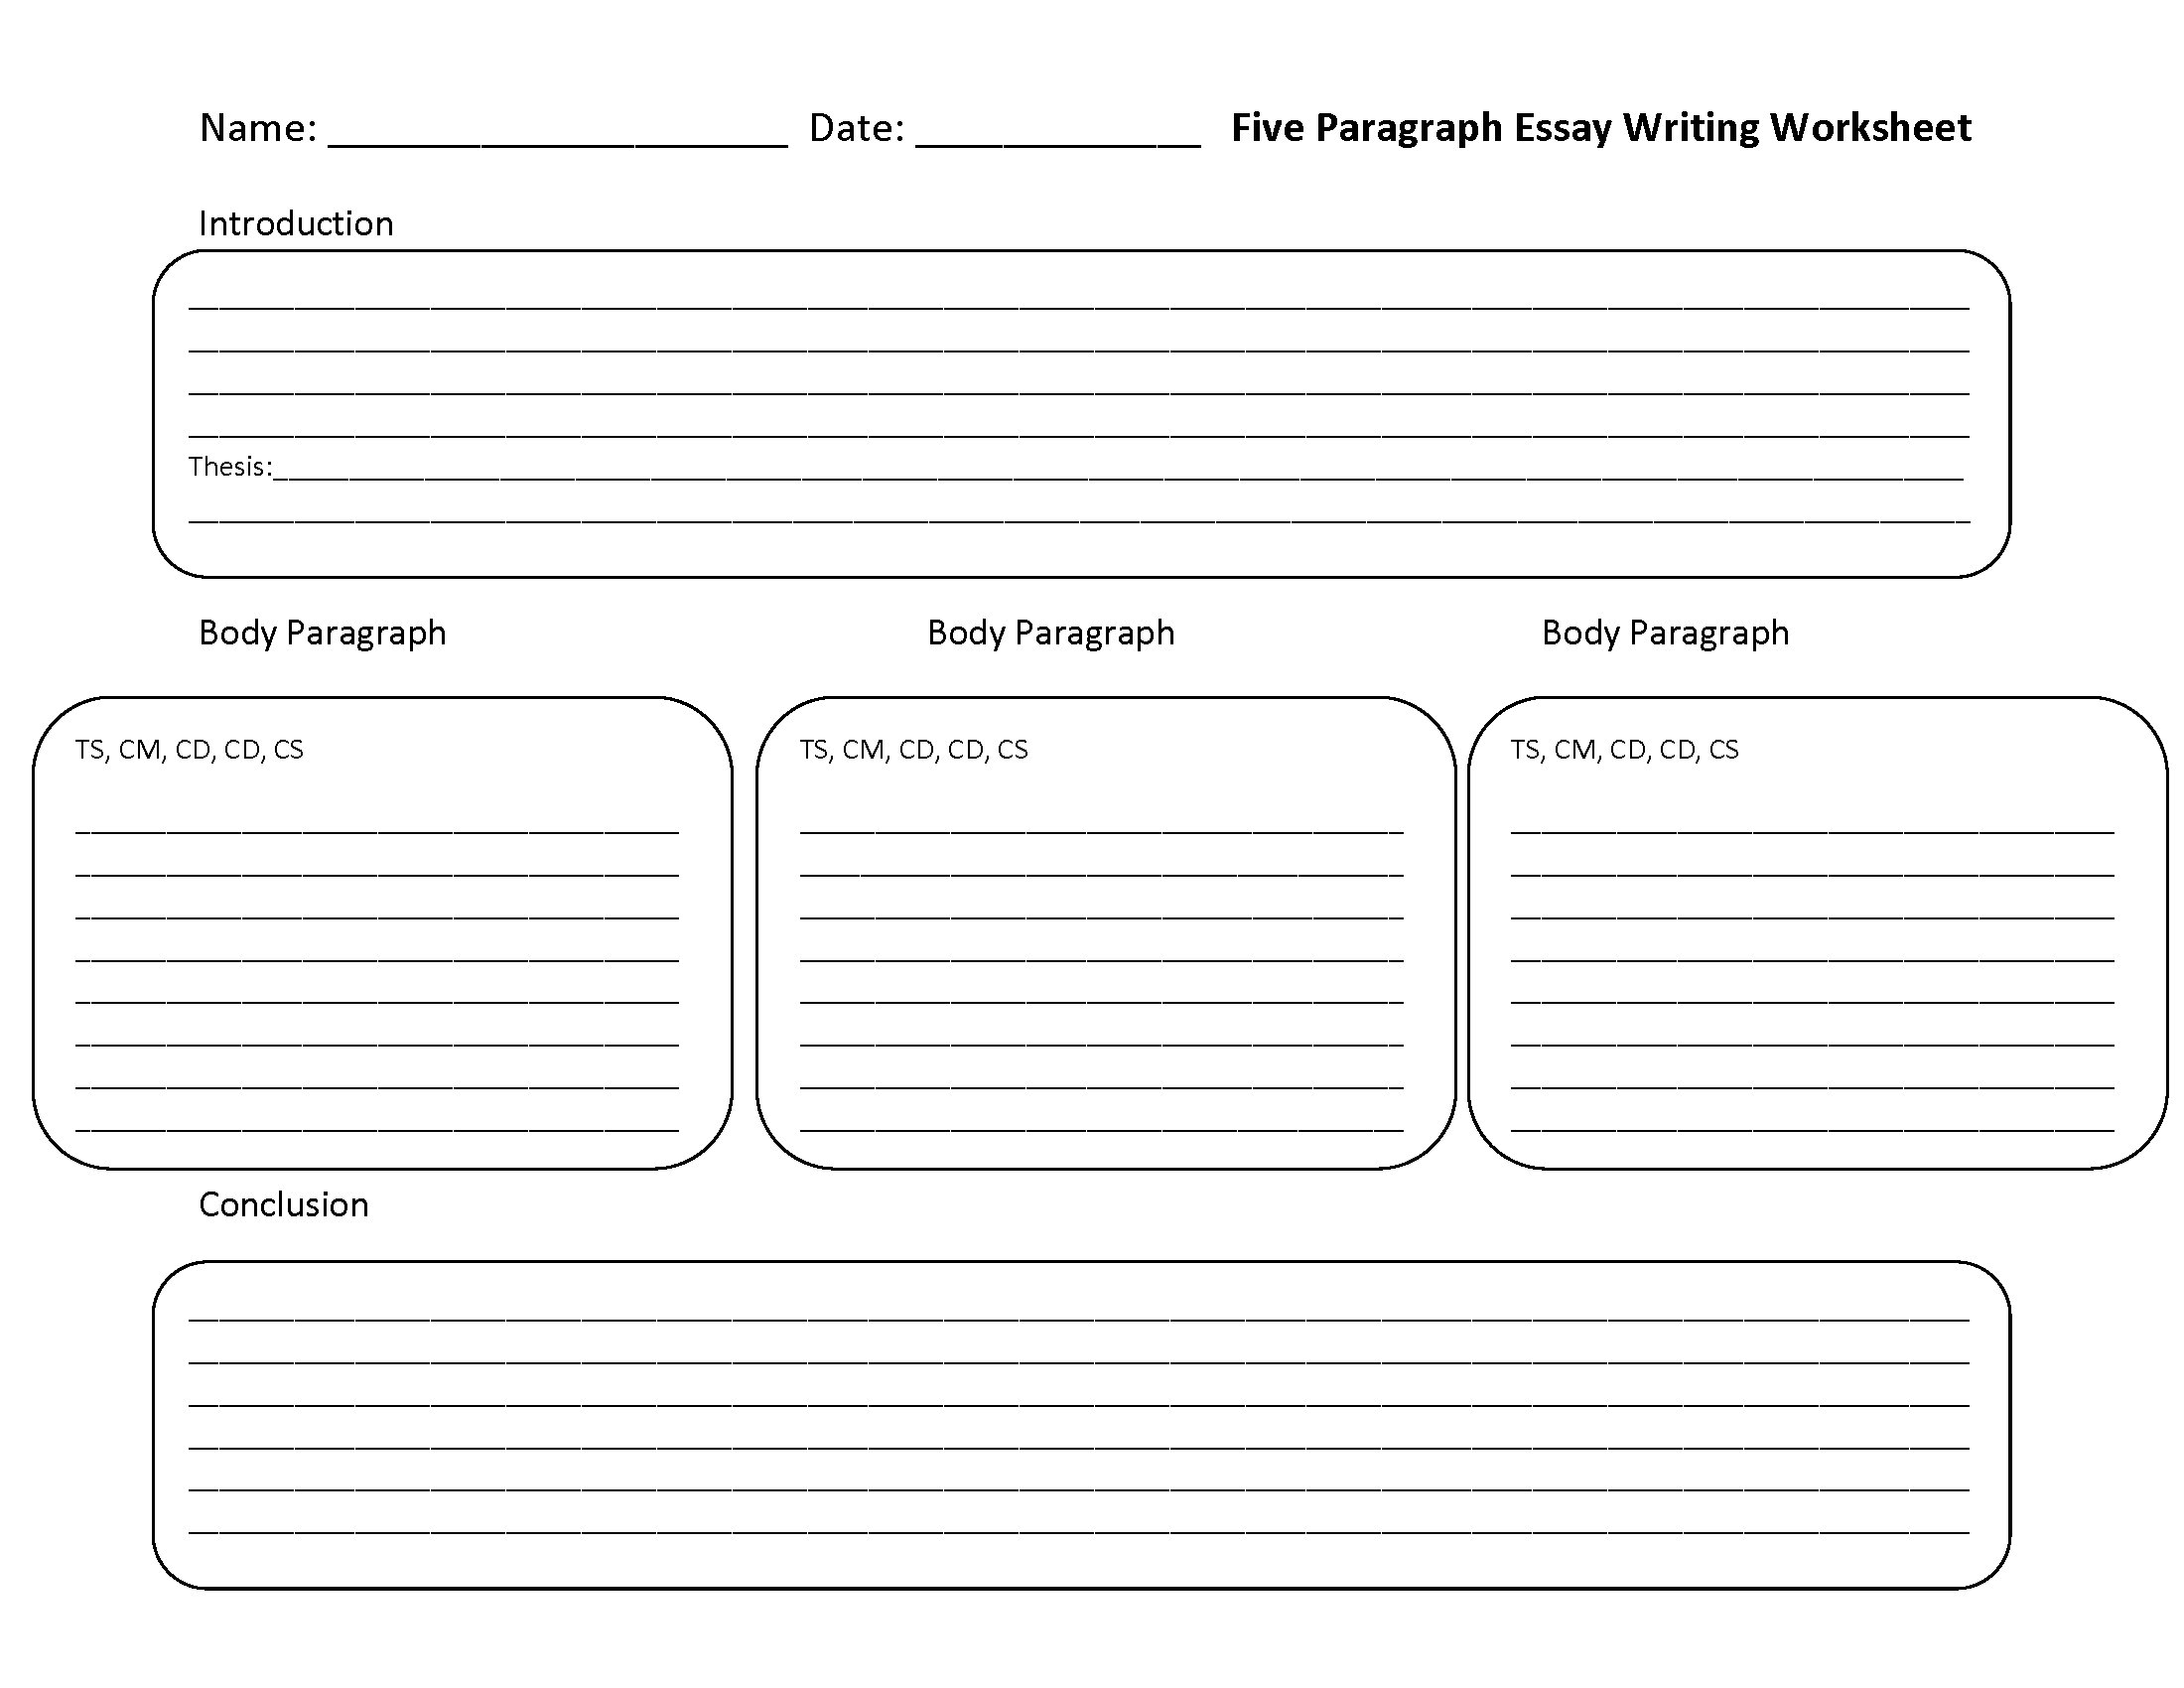 writing worksheets essay writing worksheets five paragraph essay writing worksheets